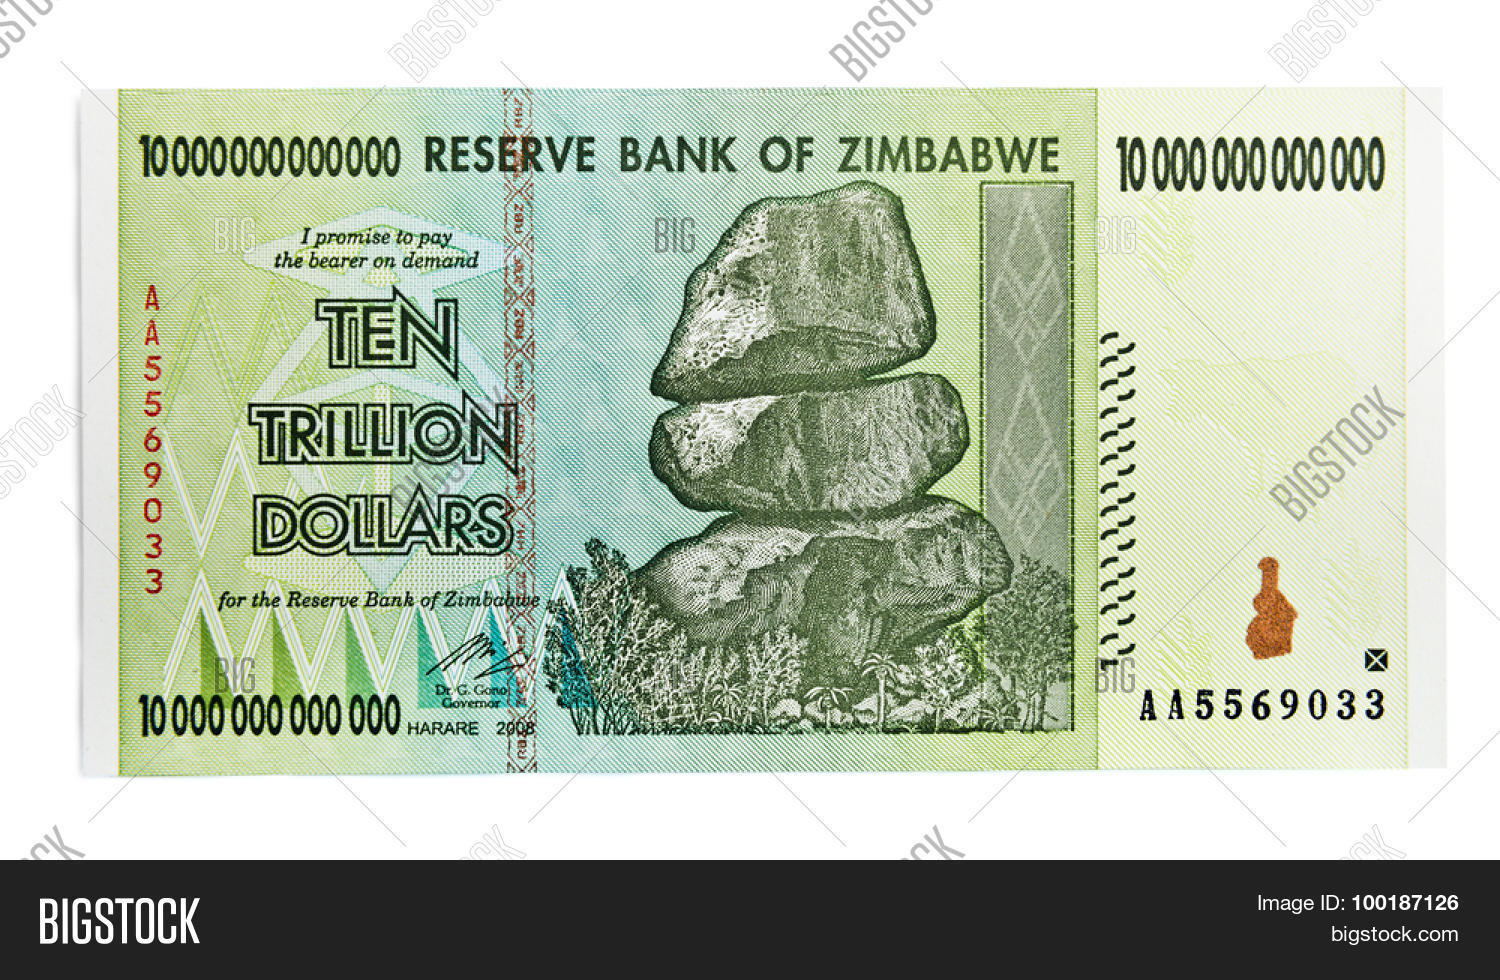 Zimbabwe Ten Trillion Dollars Bill Hyper Inflation Concept This Banknote Not Used In